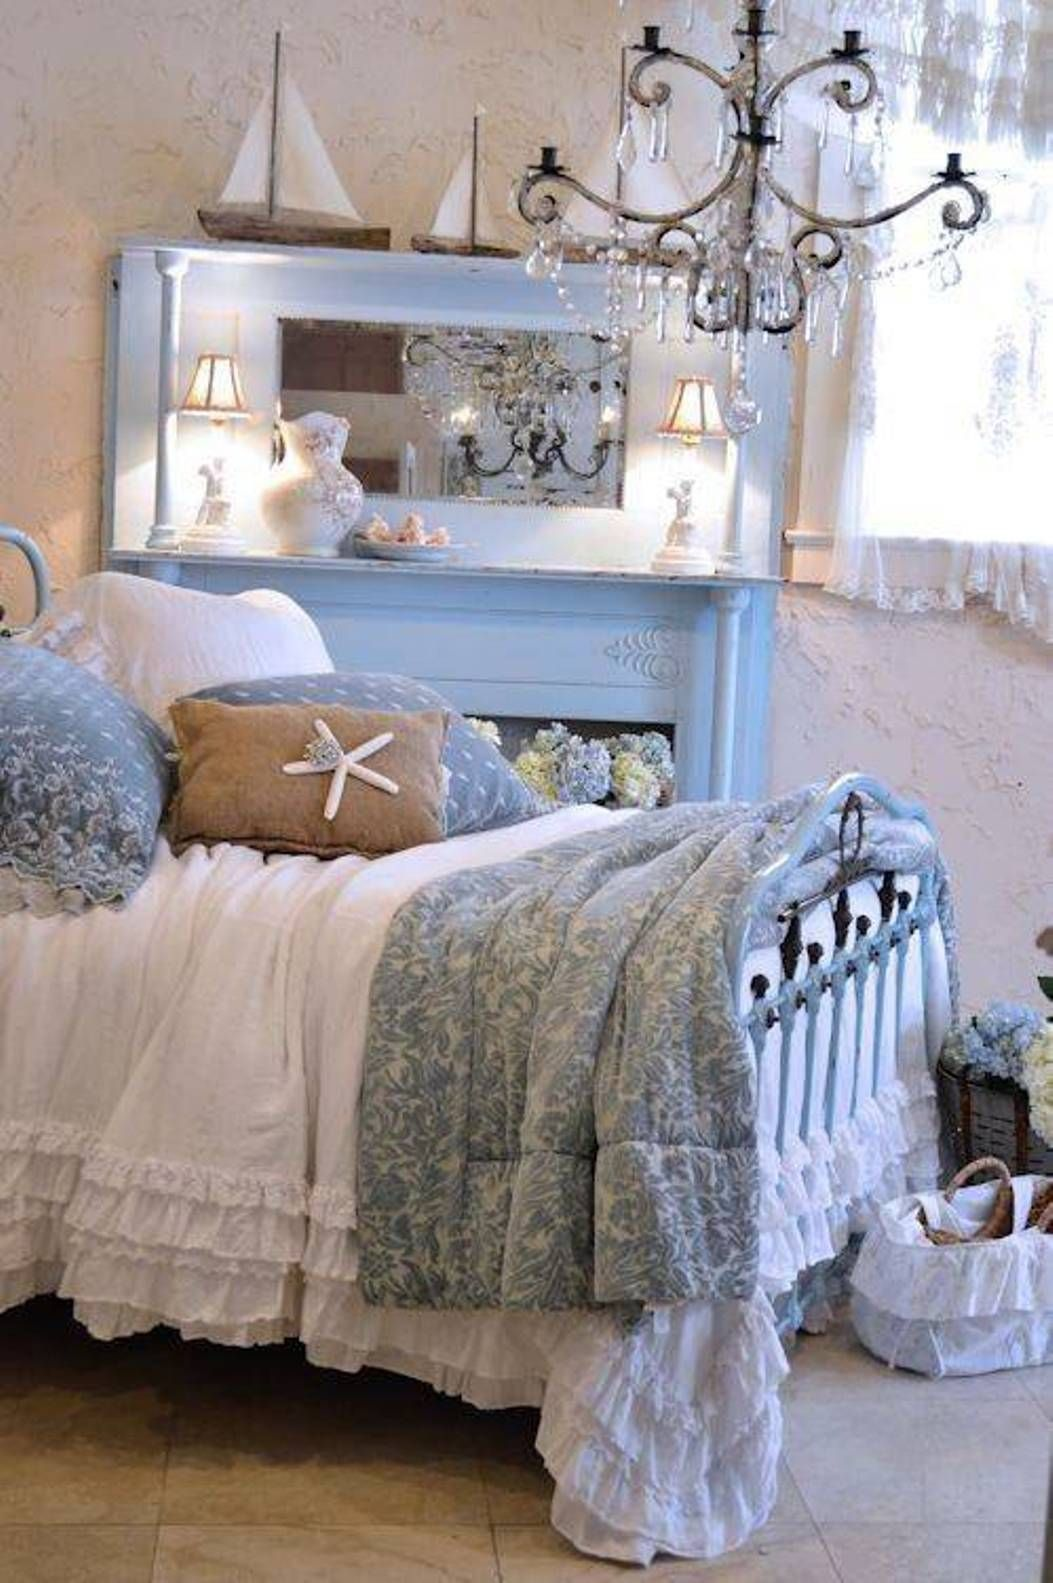 Shabby chic coastal bedroom ideas with Shabby chic bedroom accessories